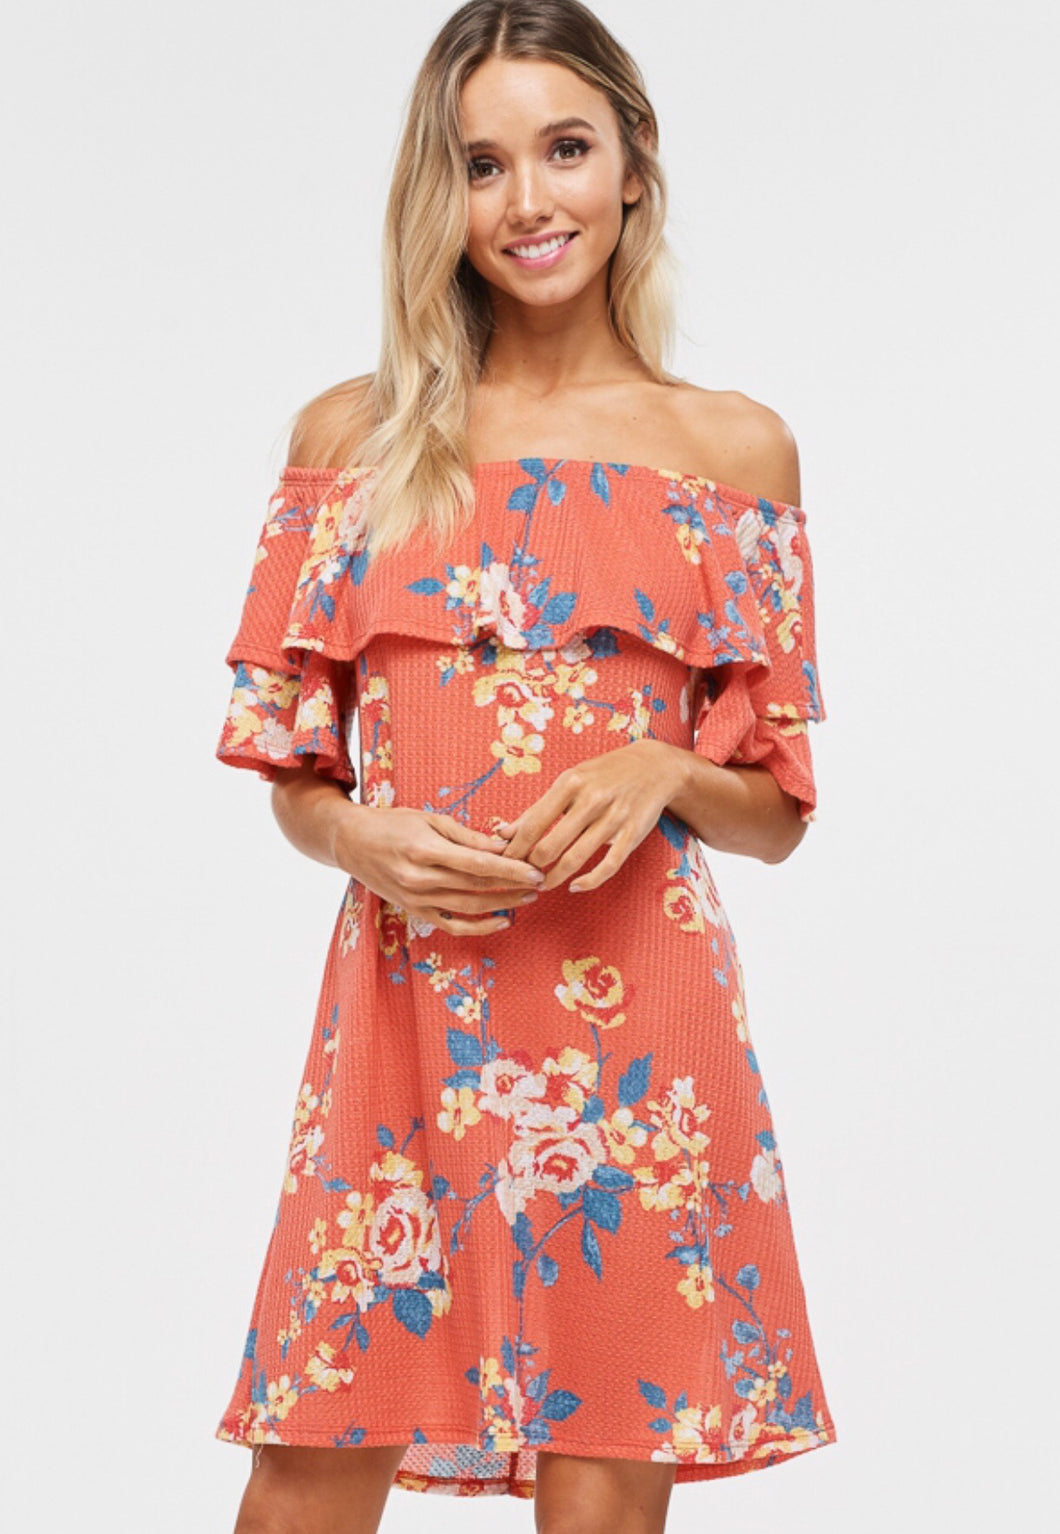 Coral /Floral dress with ruffle detail